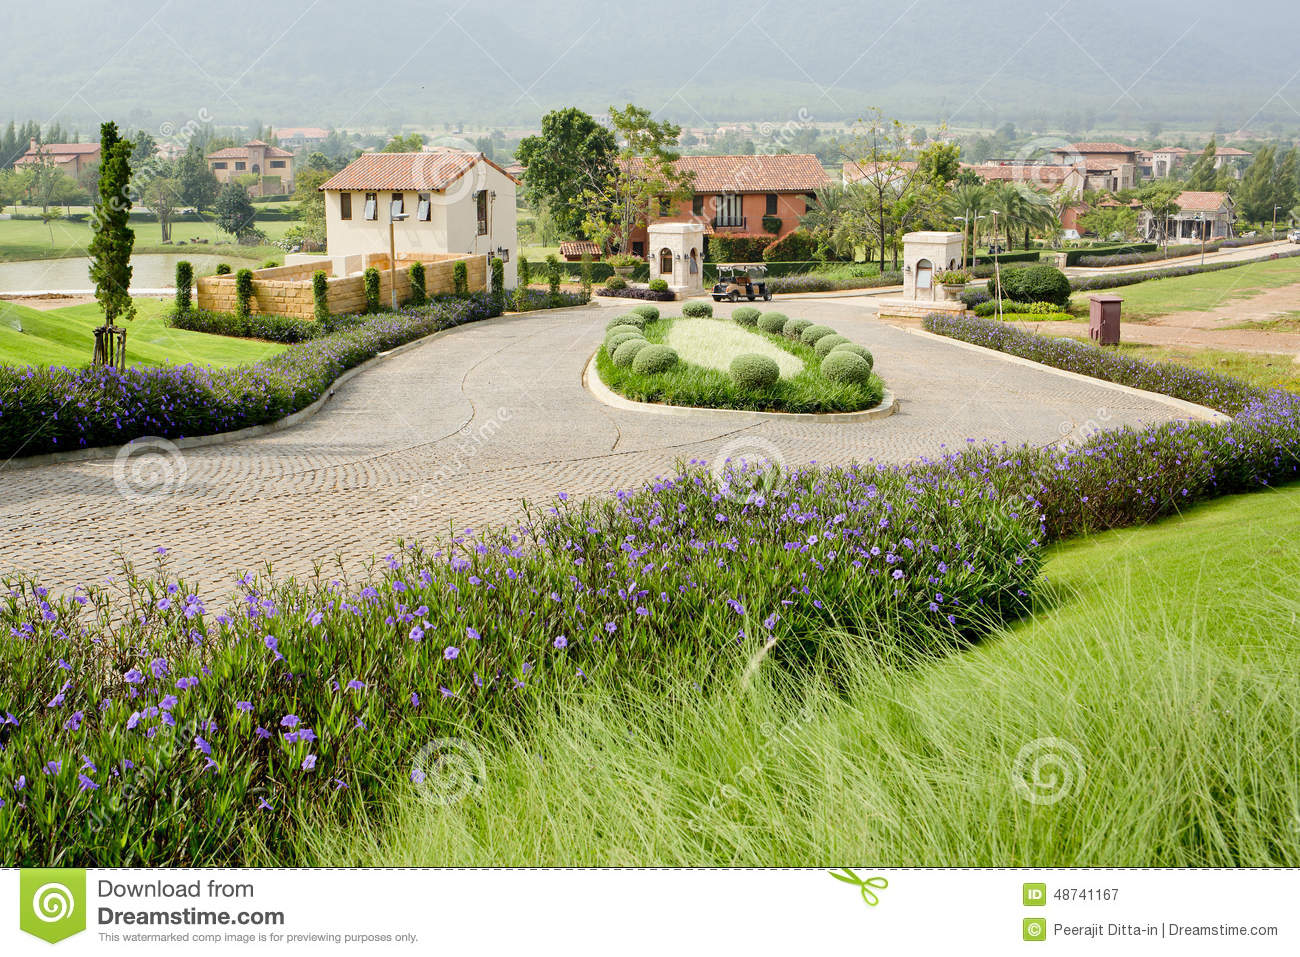 Nice Houses With Beautiful Garden And Walk Way In Small Village Stock Image Image Of Outside Outdoor 48741167